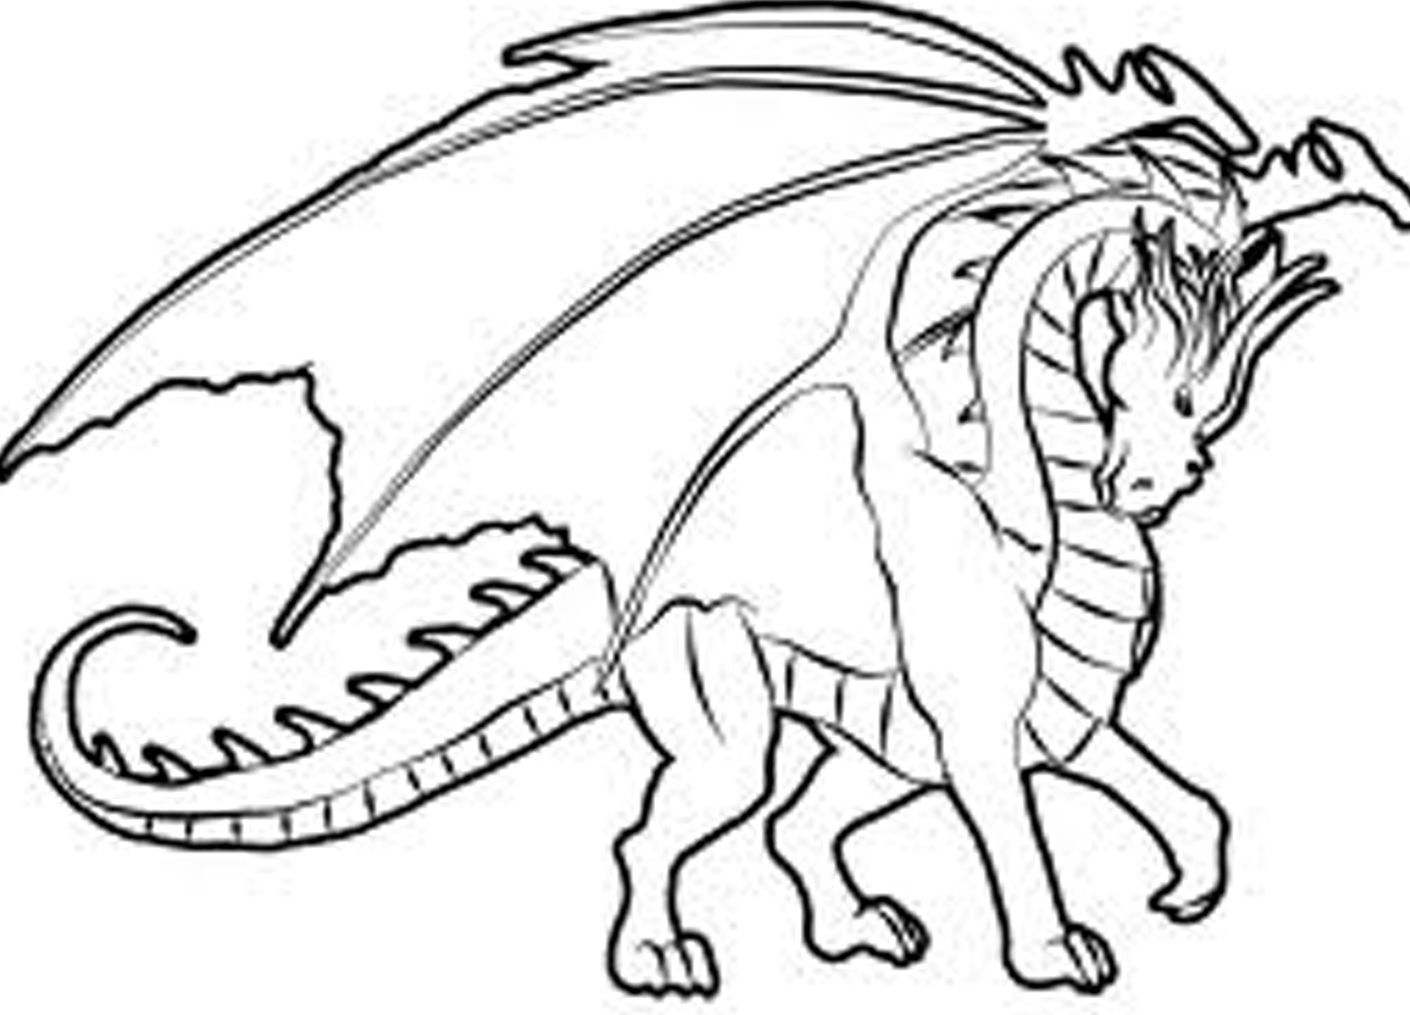 Free online coloring games for preschoolers - Hard Coloring Pages Of Dragons